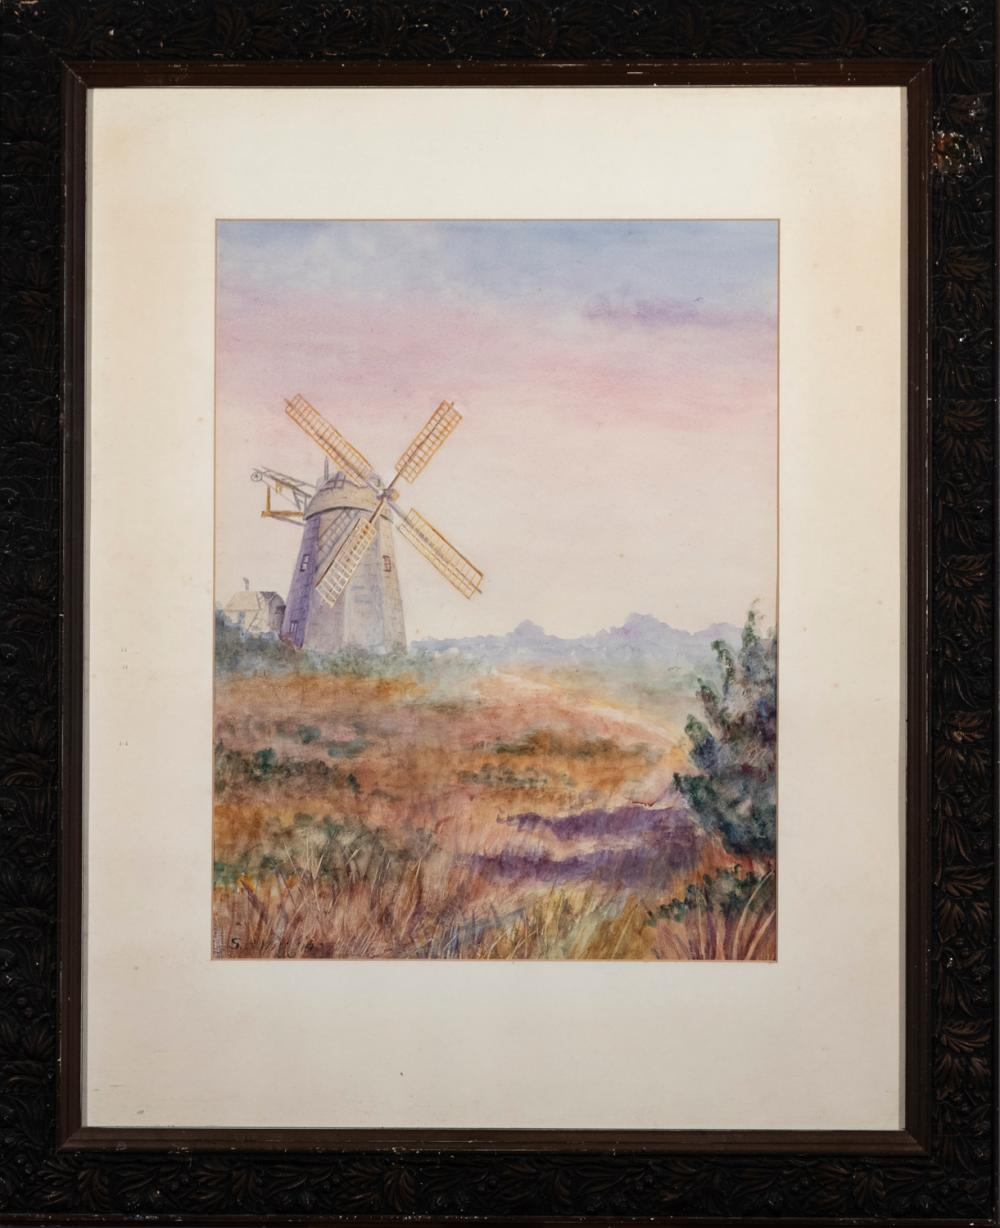 S. B. Wiggins, 20th century, Windmill, watercolor on paper, 18 1/2 x 14 inches